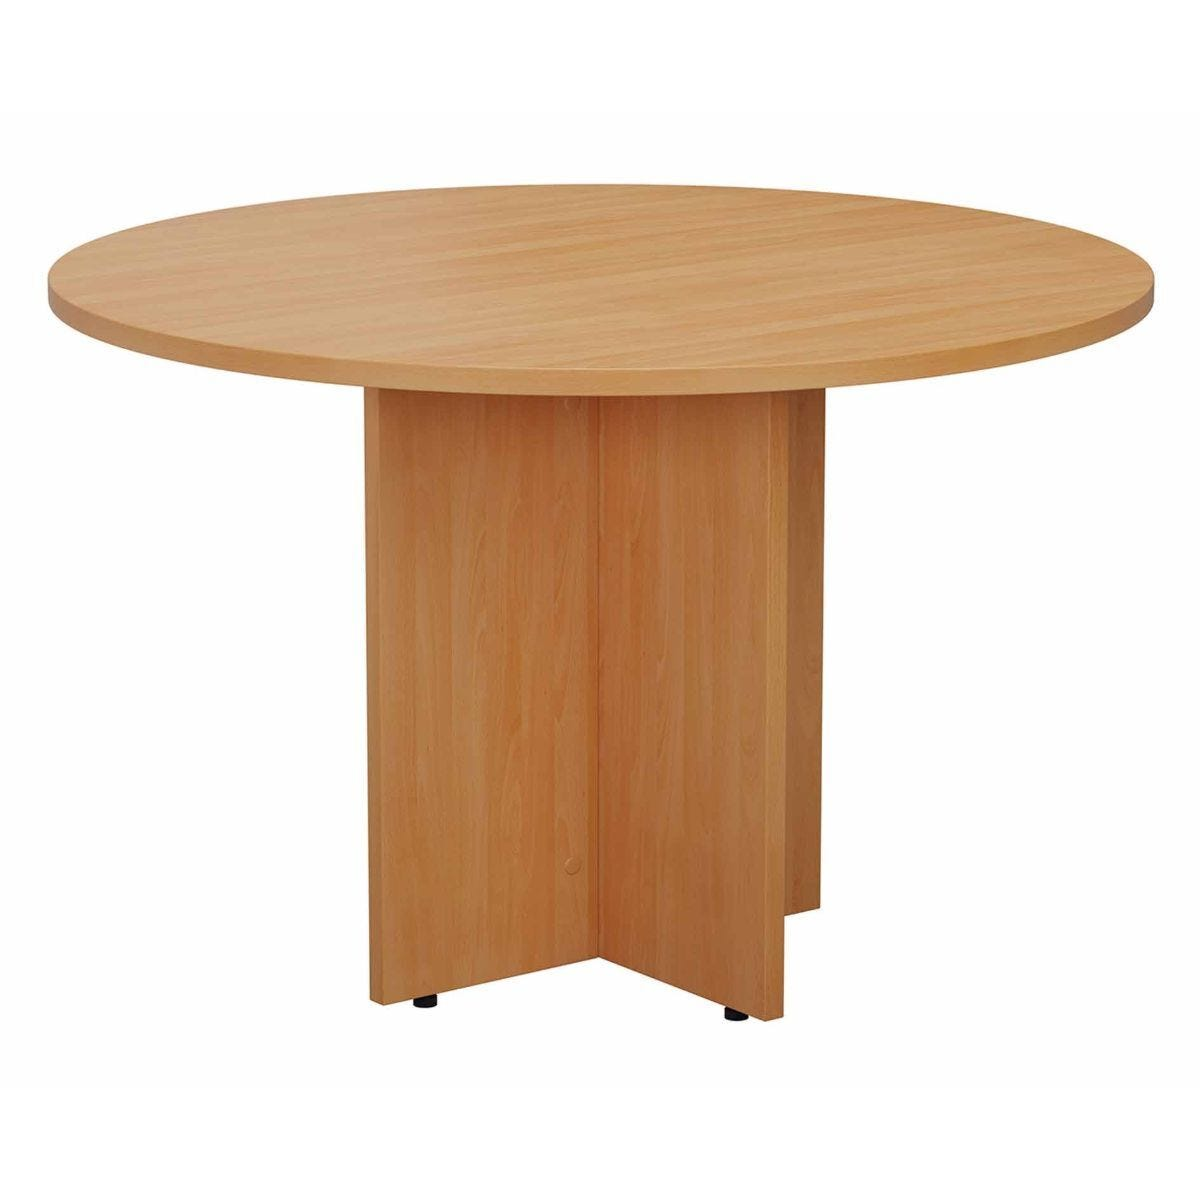 TC Office Round Meeting Table 1100mm Beech